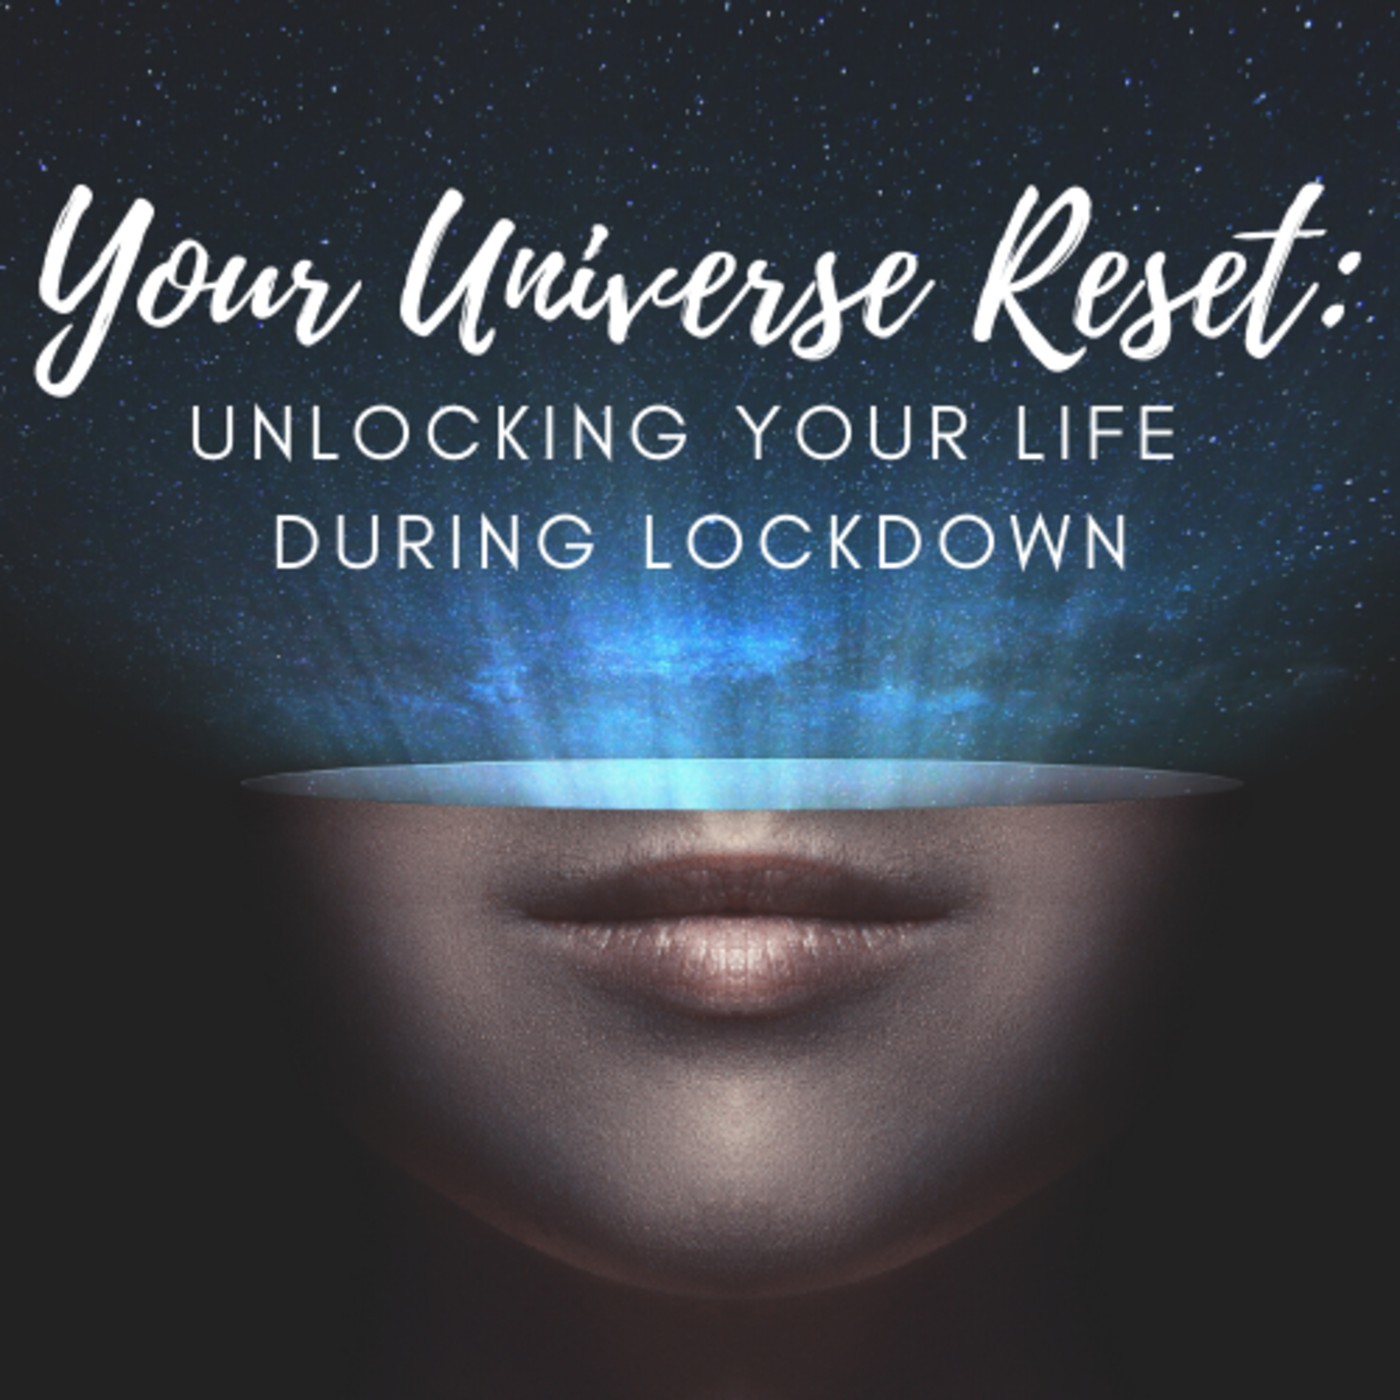 Your Universe Reset